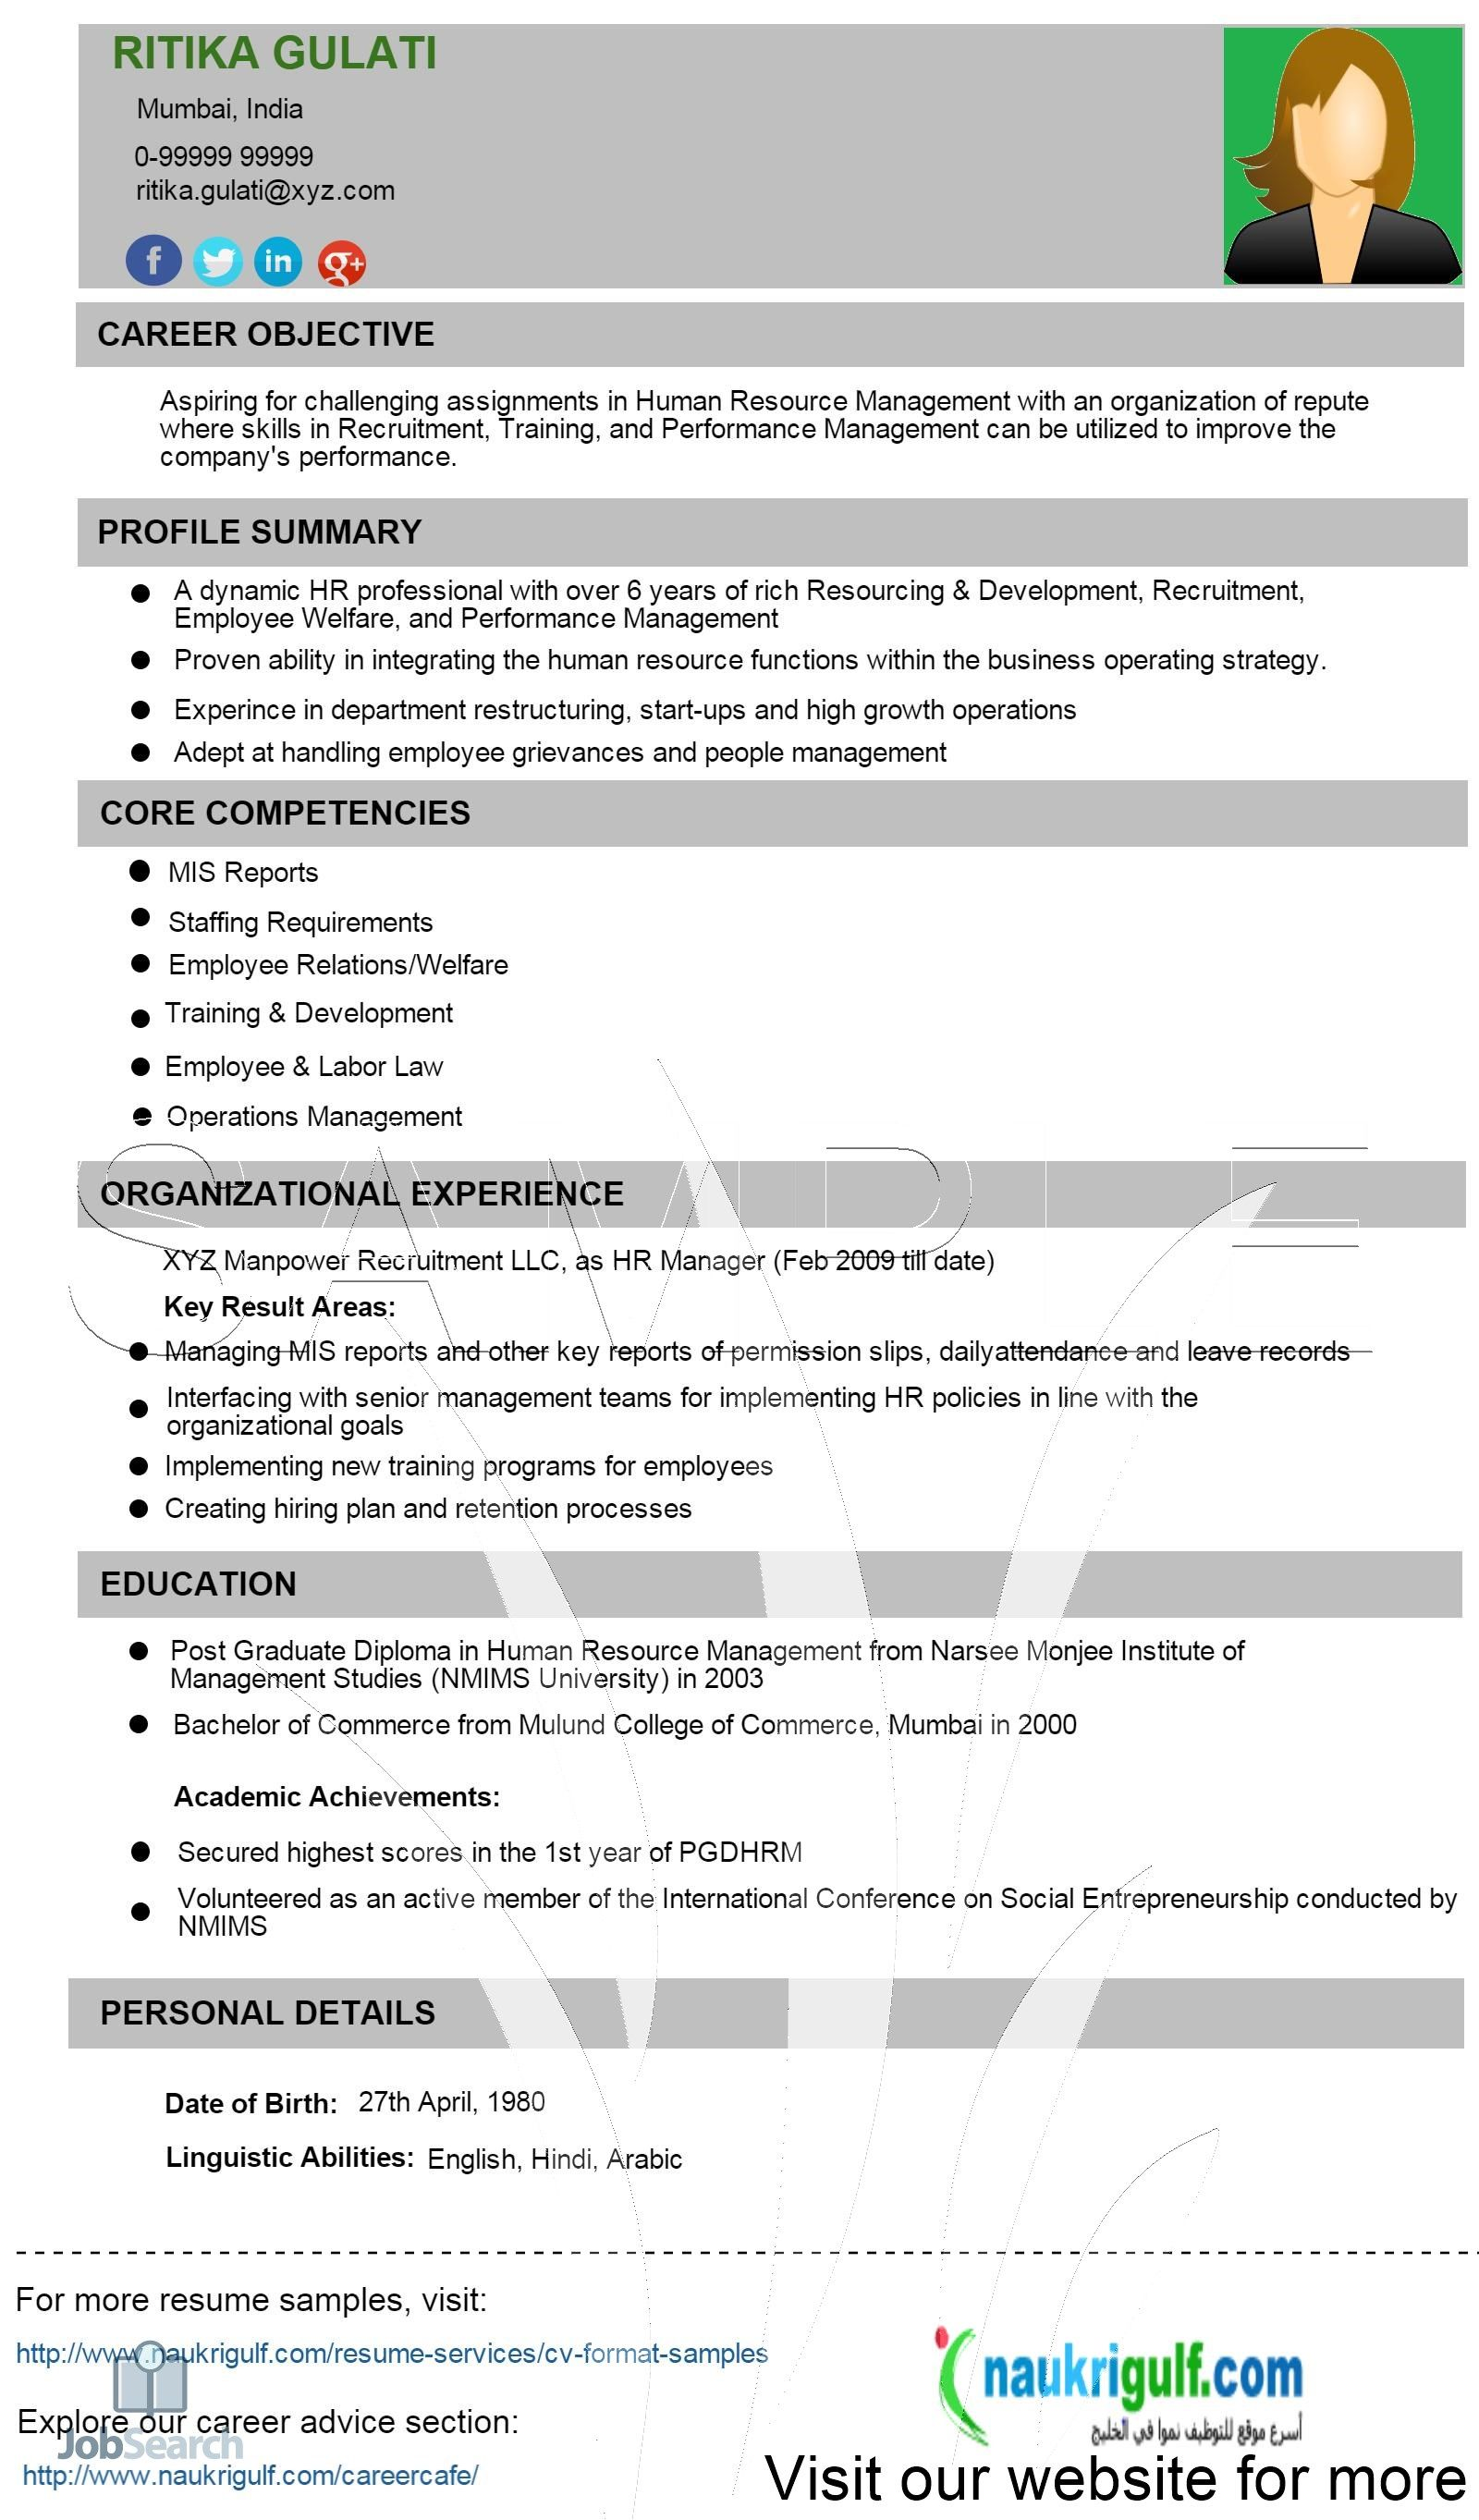 Business Resume Examples Best Human Resources Jobs Human Resource Management Templates Human Resource Management Student